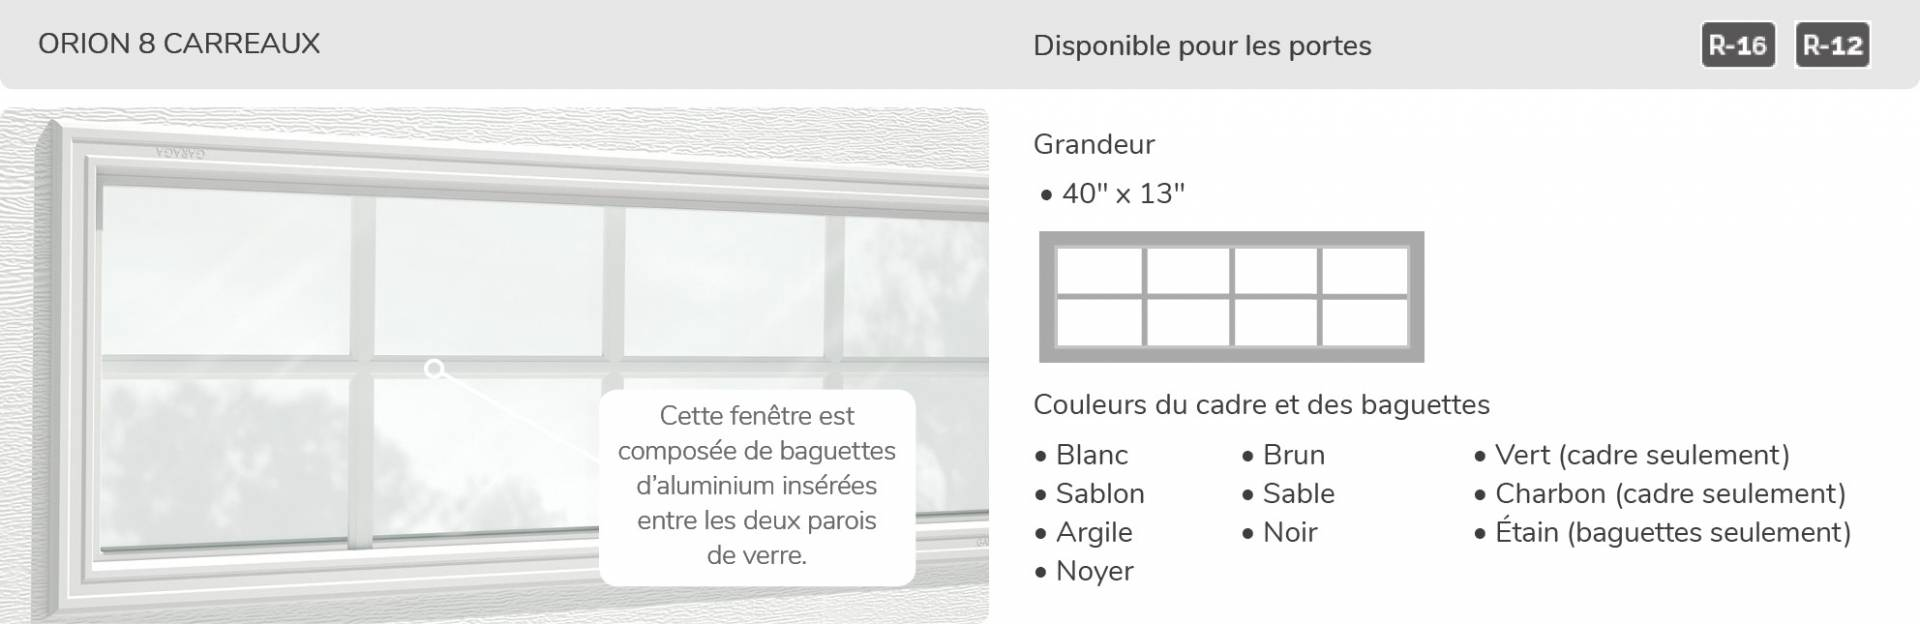 Orion 8 carreaux, 21' x 13', disponible pour la porte R-16